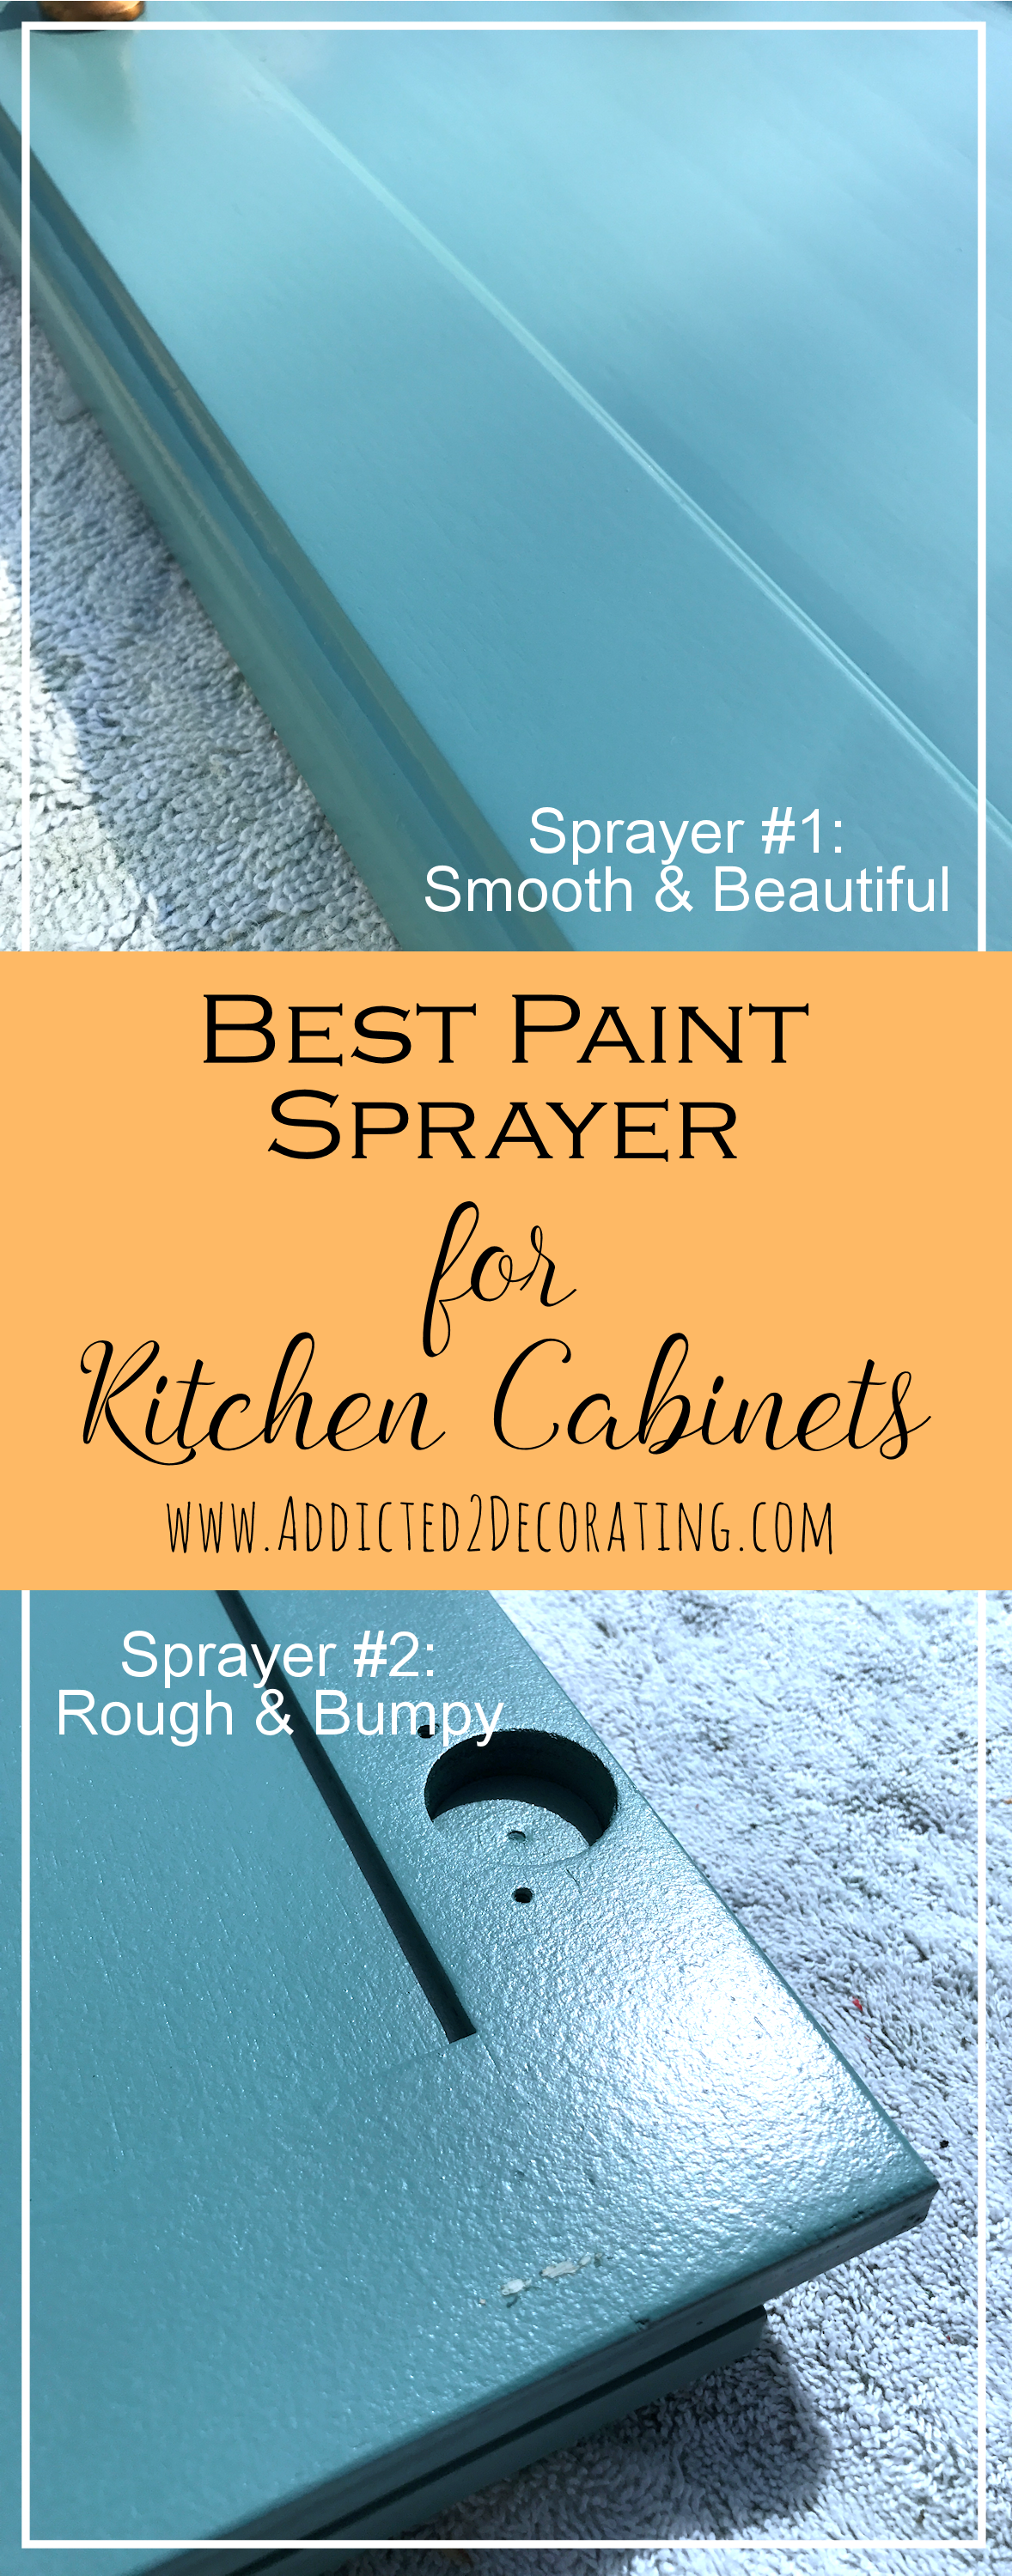 The Best Paint Sprayer For Kitchen Cabinets (Plus Tips On Getting A ...